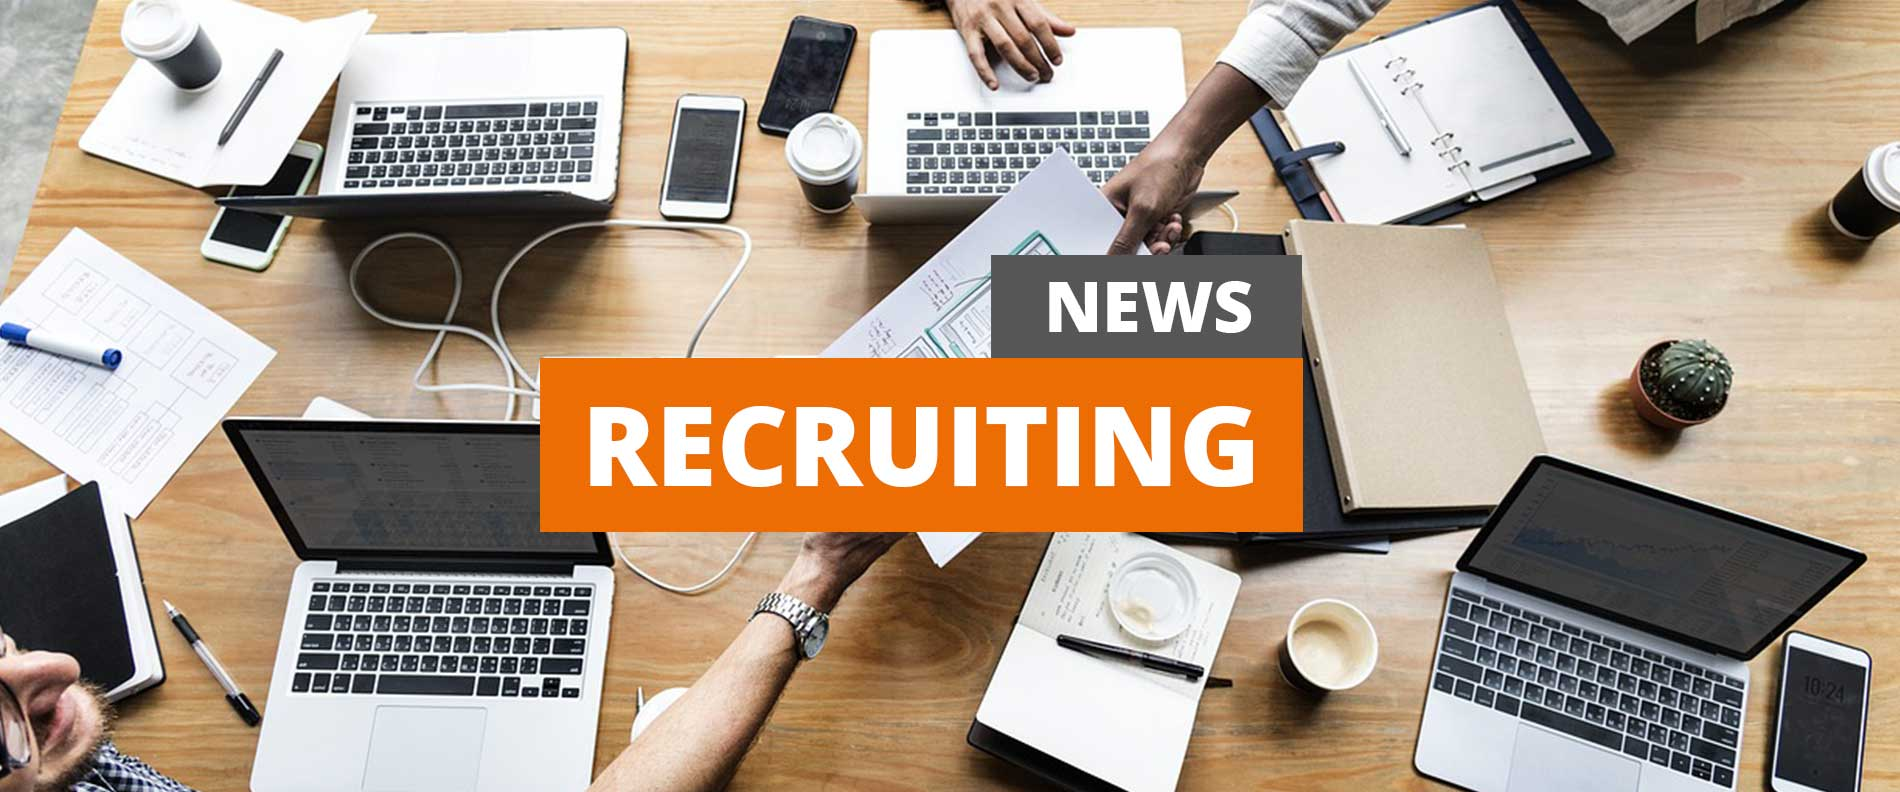 recruiting-news_homepage_8.10